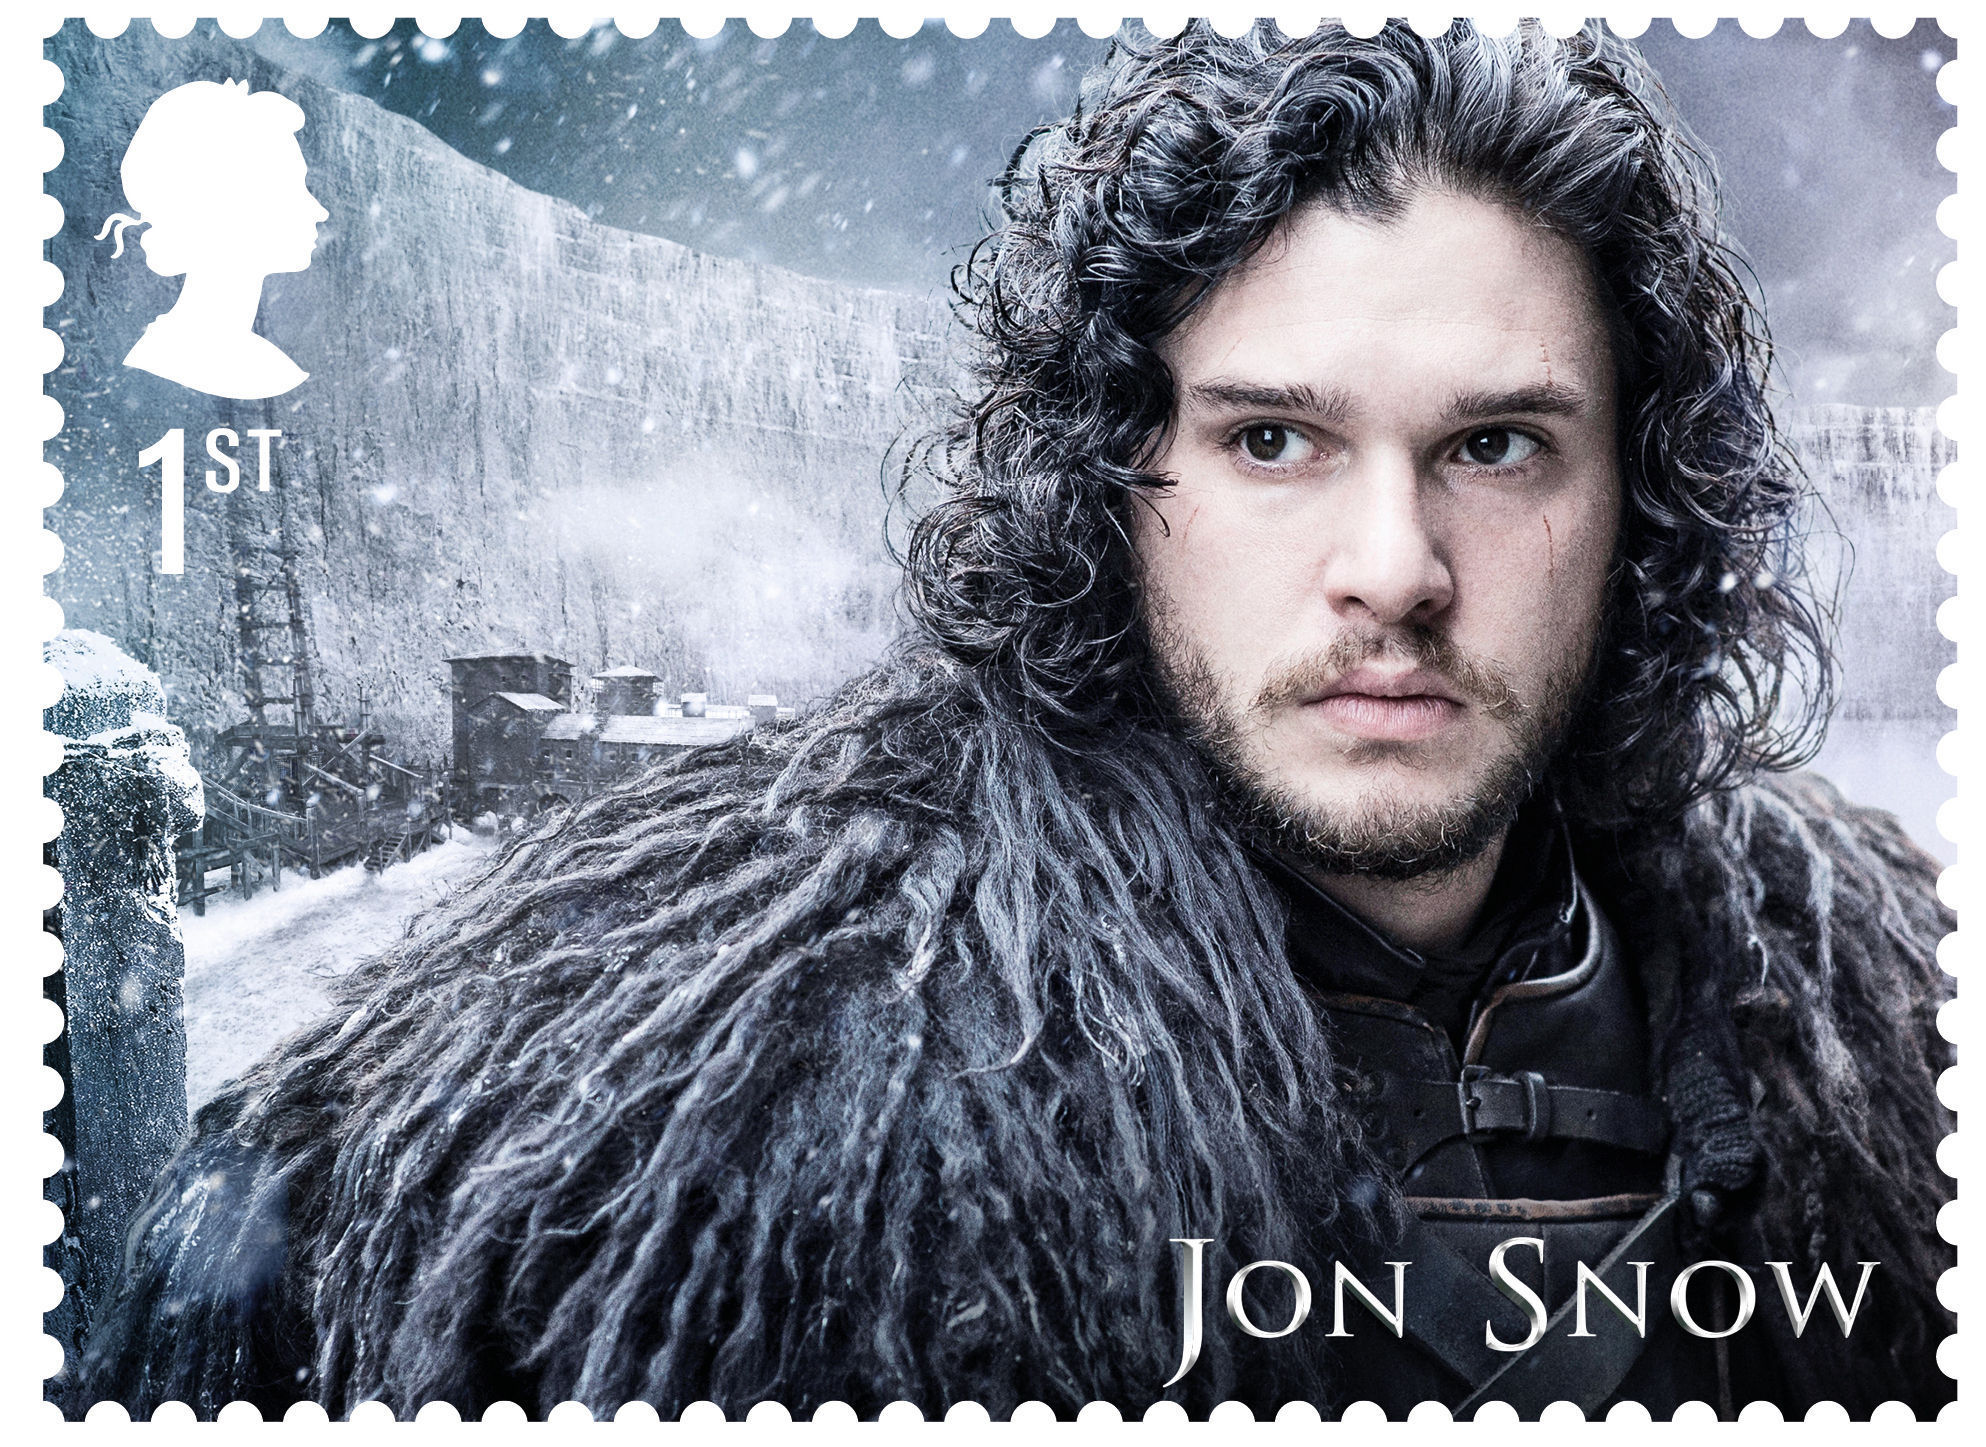 The Game Of Thrones stamps will be available from January 23 (Royal Mail/PA)